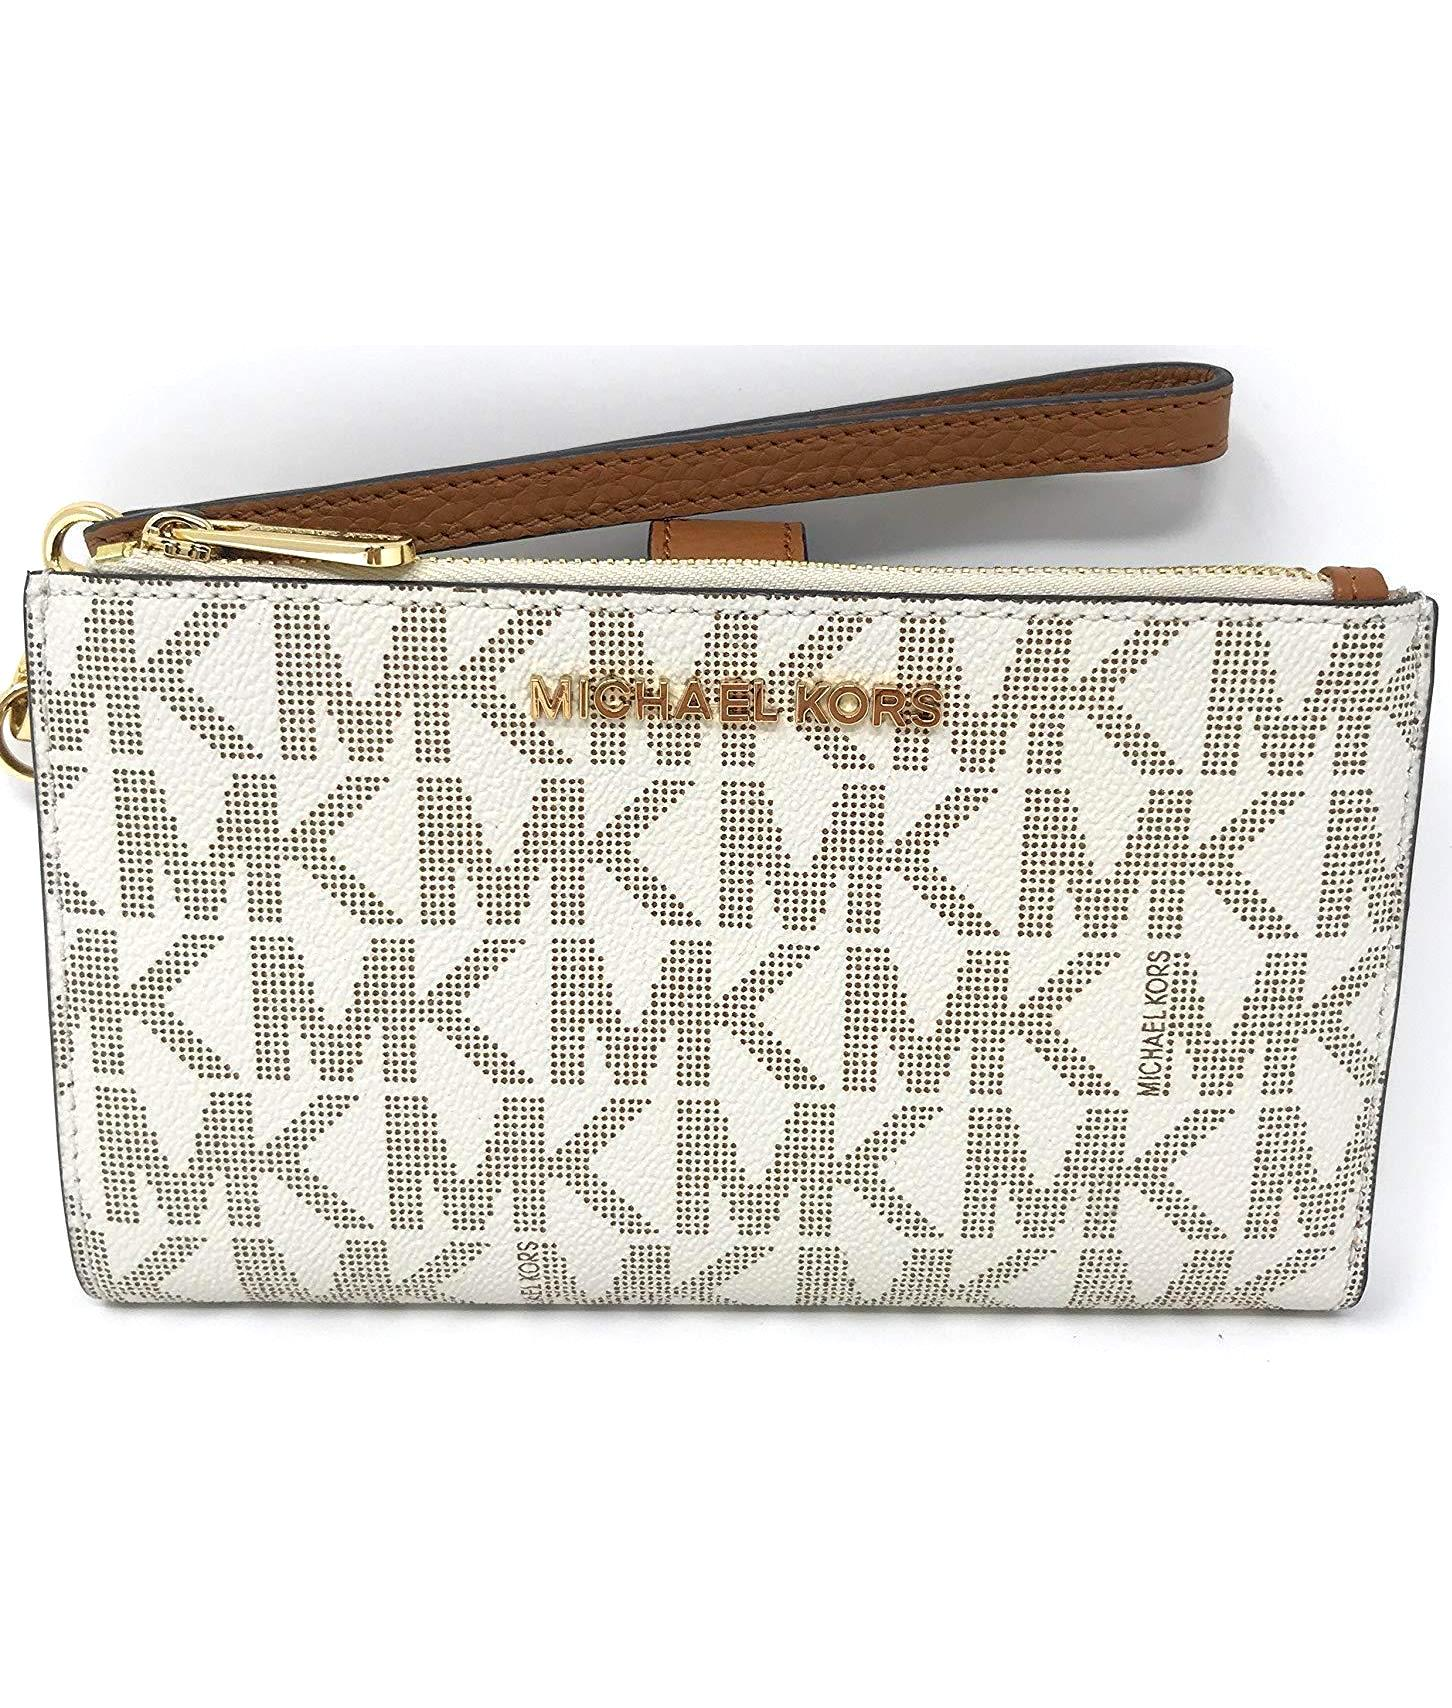 Jet Set Travel Double Zip Wristlet In Vanilla Acorn Authentic Michael Kors Jetset Lugagge